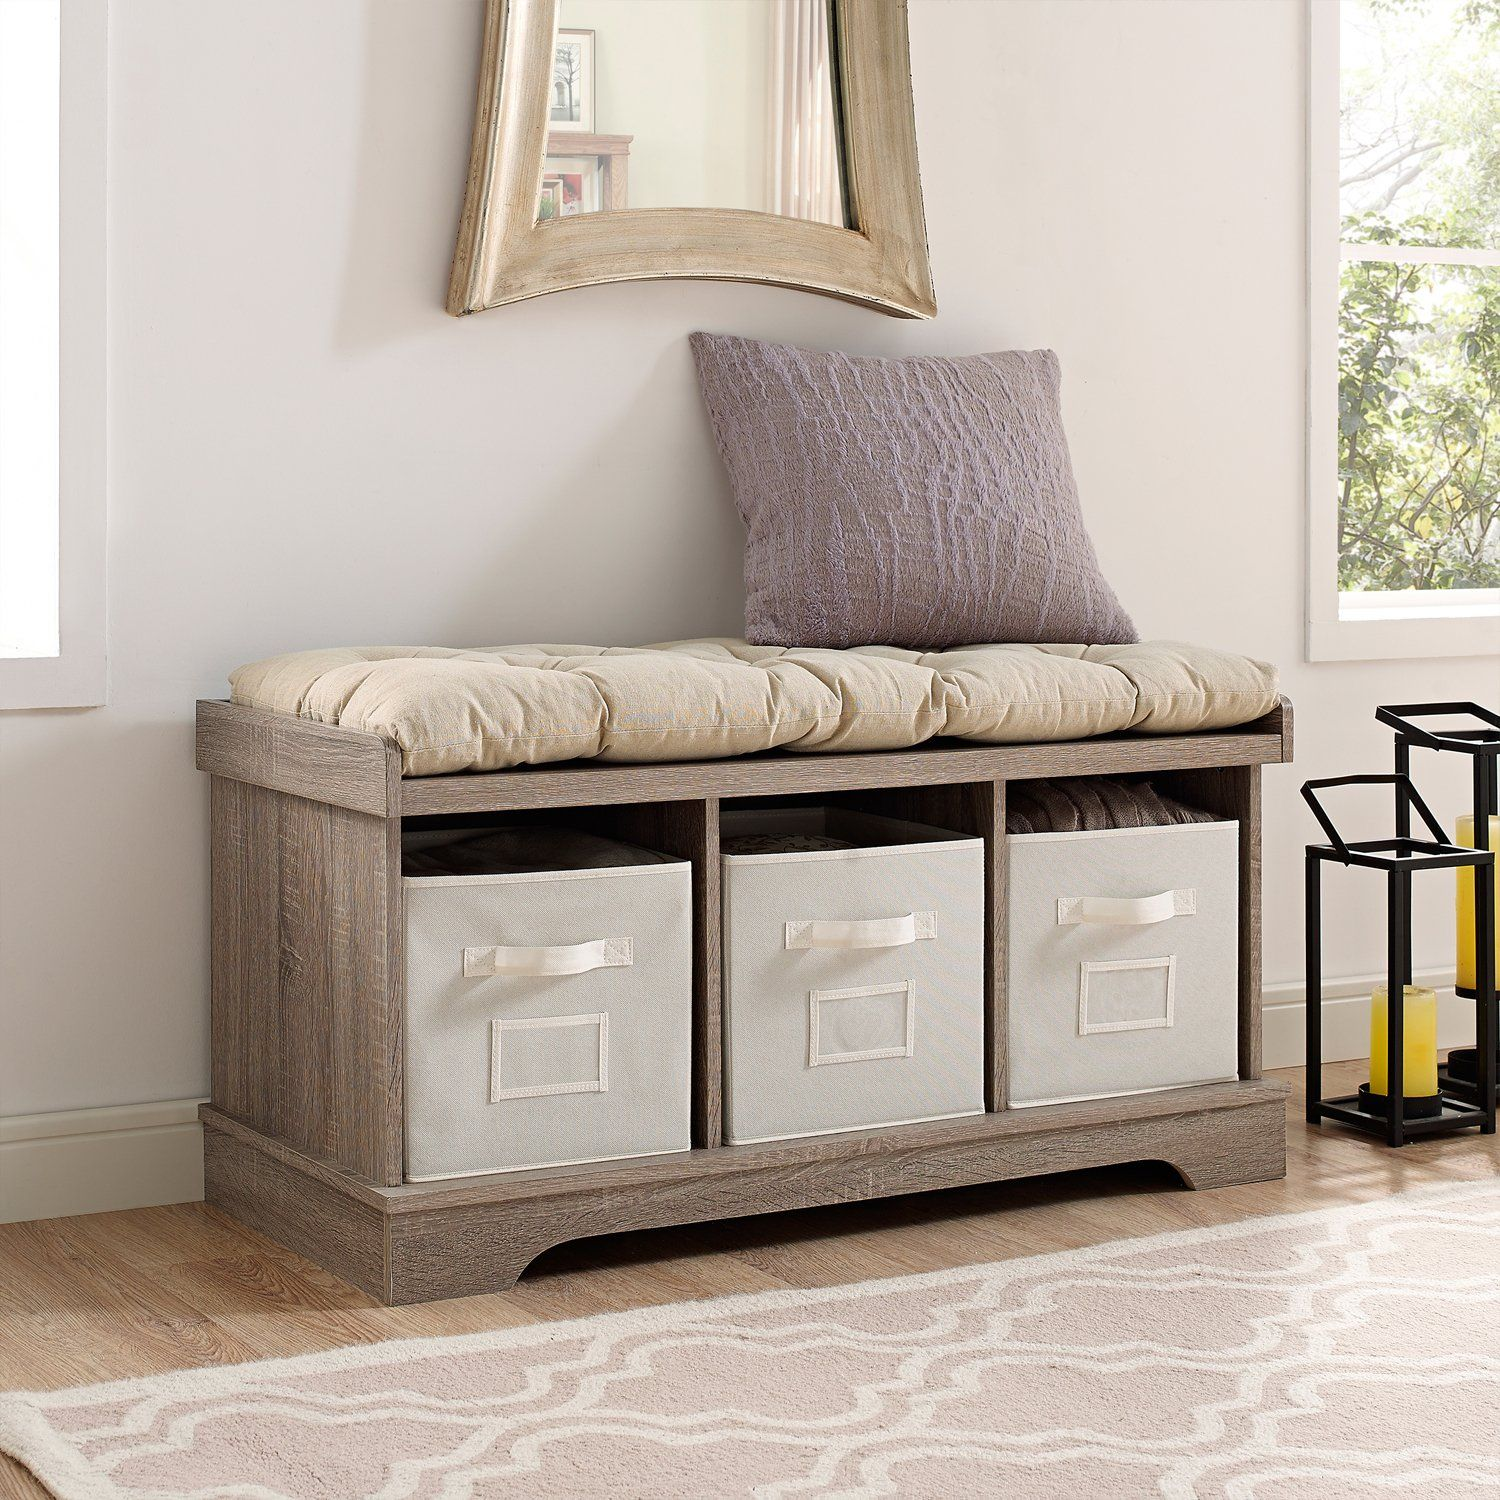 42 Wood Storage Bench With Totes And Cushion Wood Storage Bench Entryway Bench Storage Storage Bench With Cushion